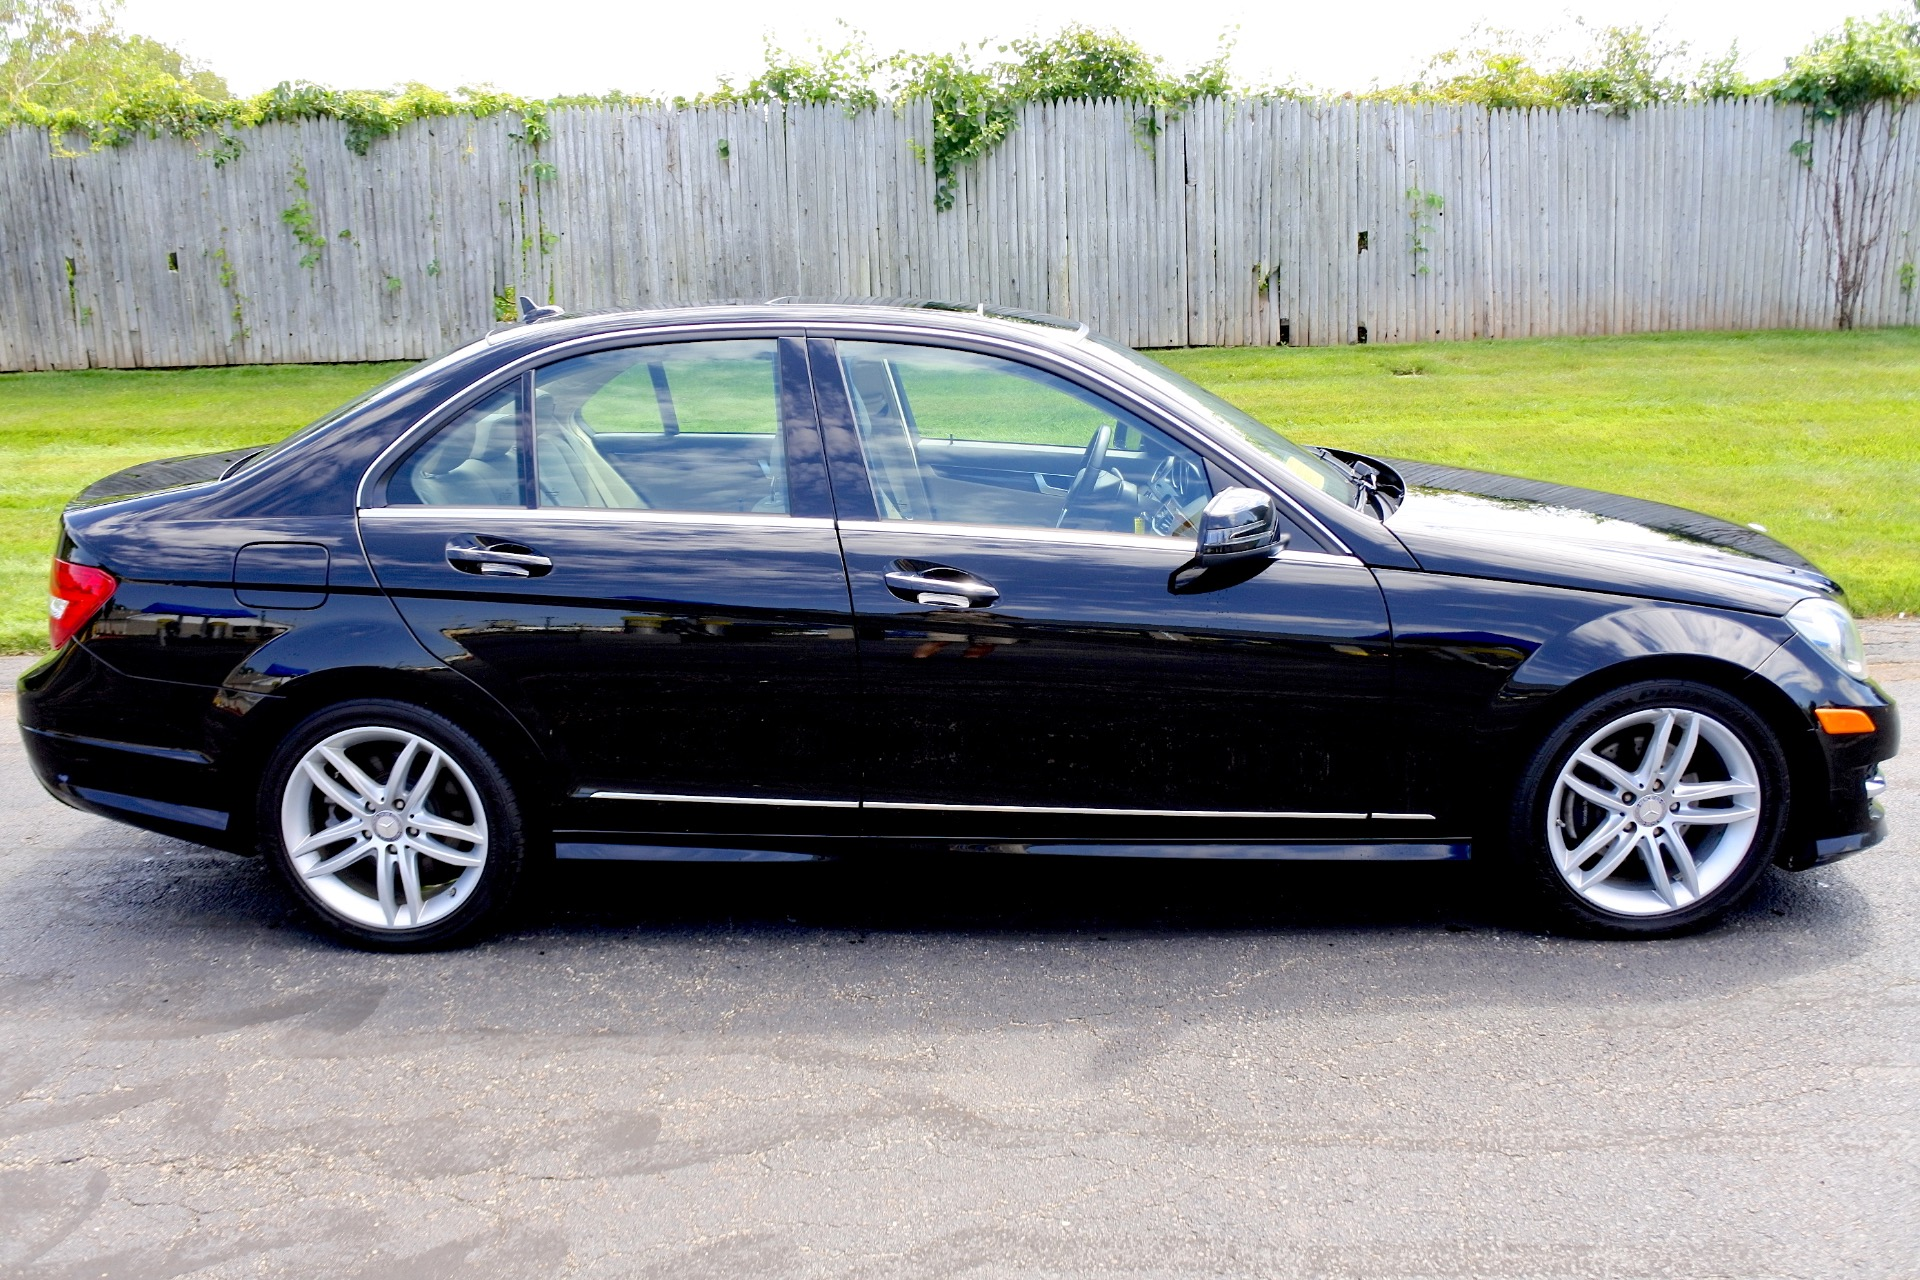 Used 2012 Mercedes-Benz C-class 4dr Sdn C300 Sport 4MATIC Used 2012 Mercedes-Benz C-class 4dr Sdn C300 Sport 4MATIC for sale  at Metro West Motorcars LLC in Shrewsbury MA 6